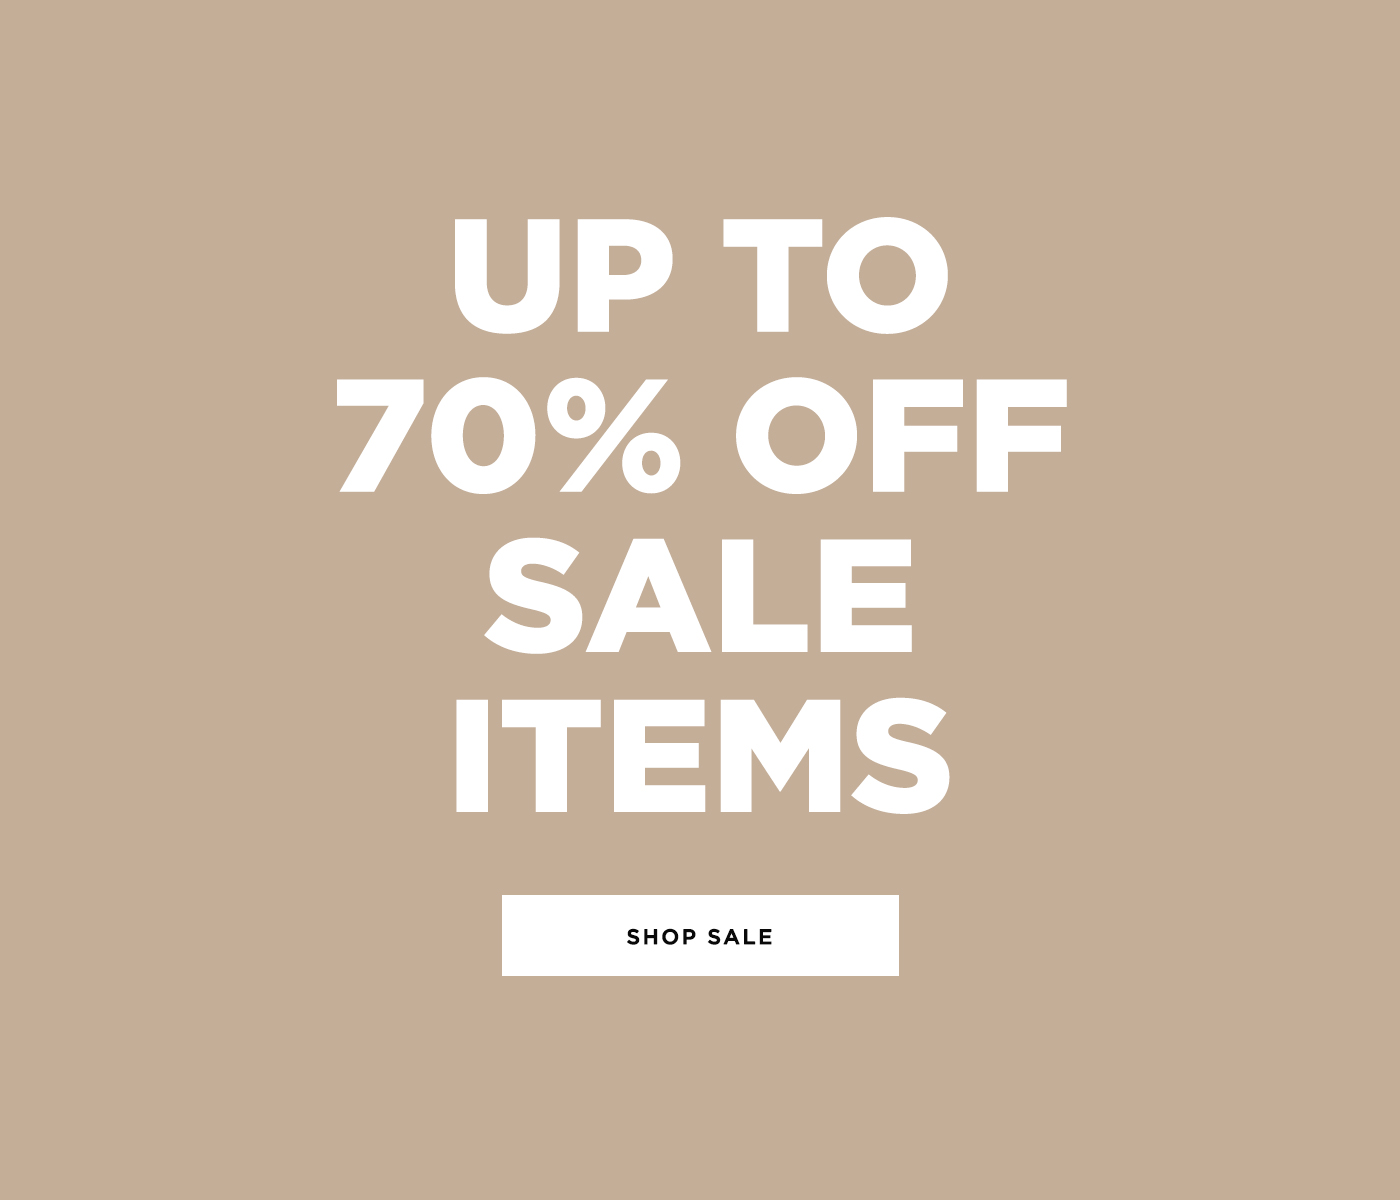 Get Up to 70% Off All Sale Items. Shop Sale